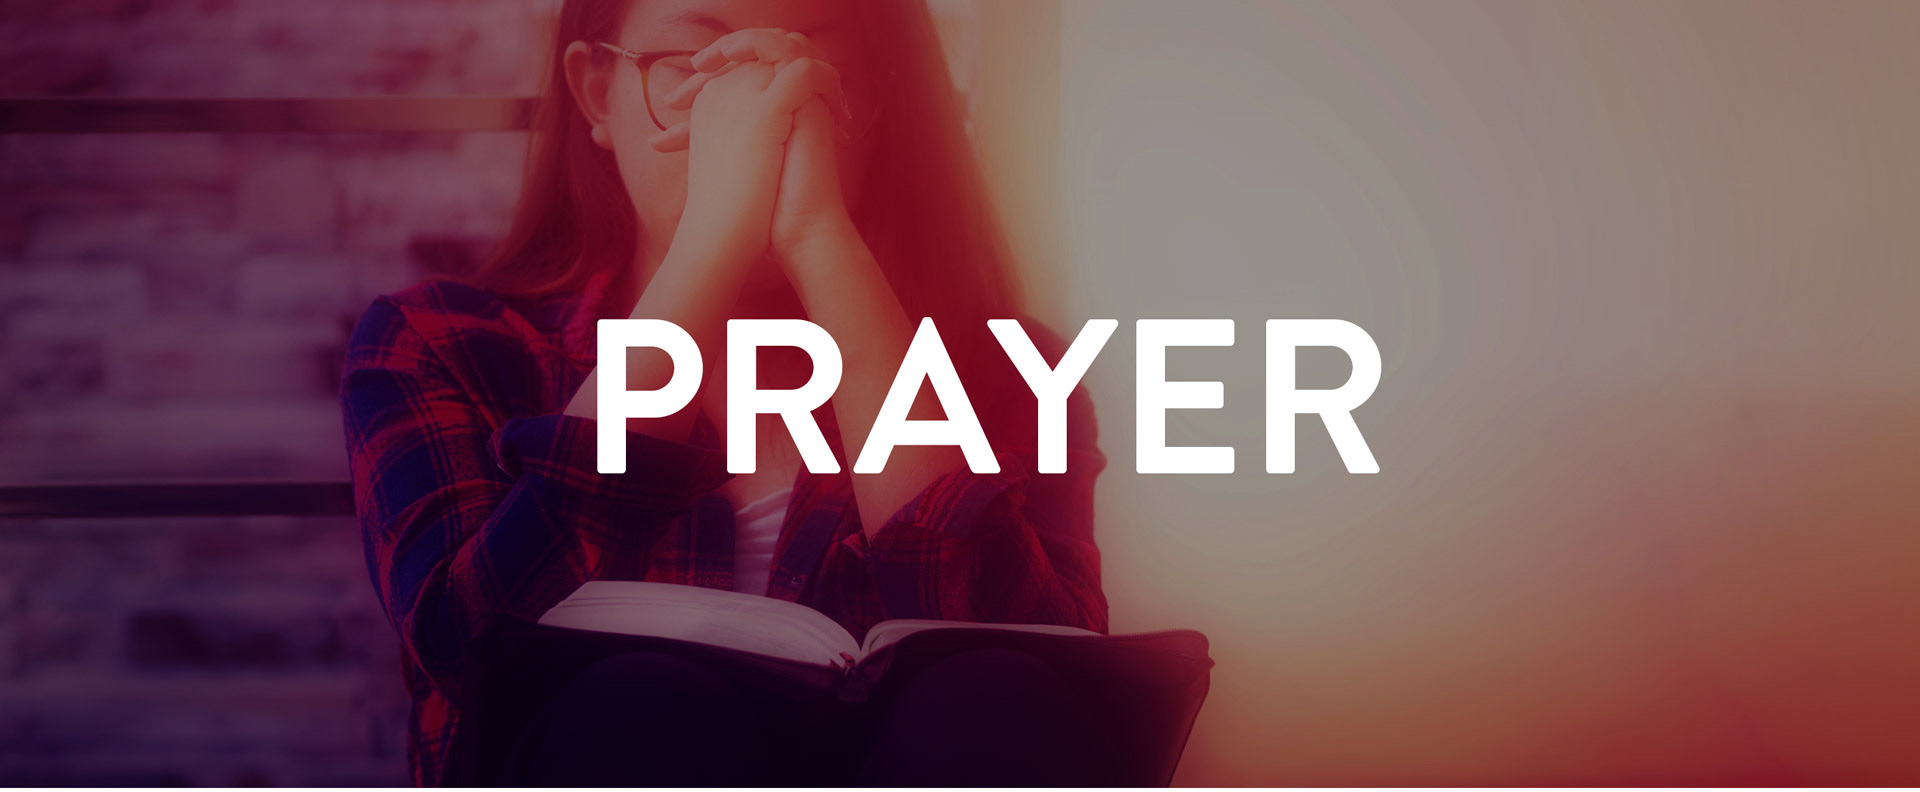 Prayer image for app